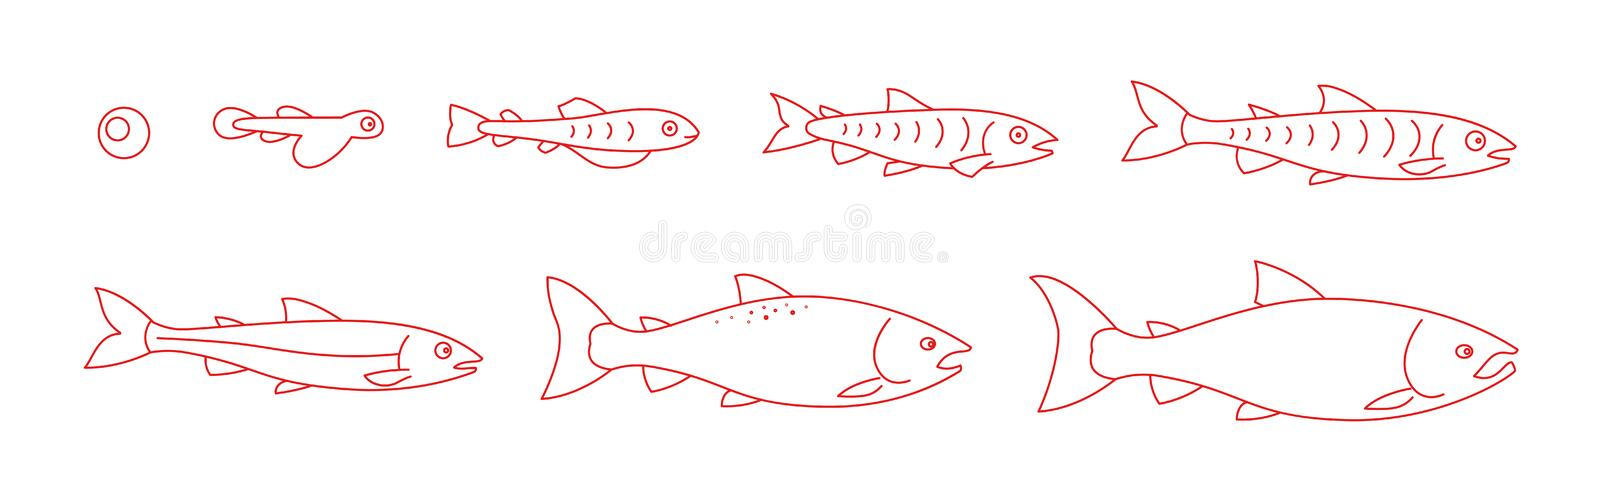 Life cycle of the Atlantic Salmon. Stages of salmon fish growth set. Coho fish from egg to fry. Sockeye aquaculture. Animation progression. Outline contour red royalty free illustration